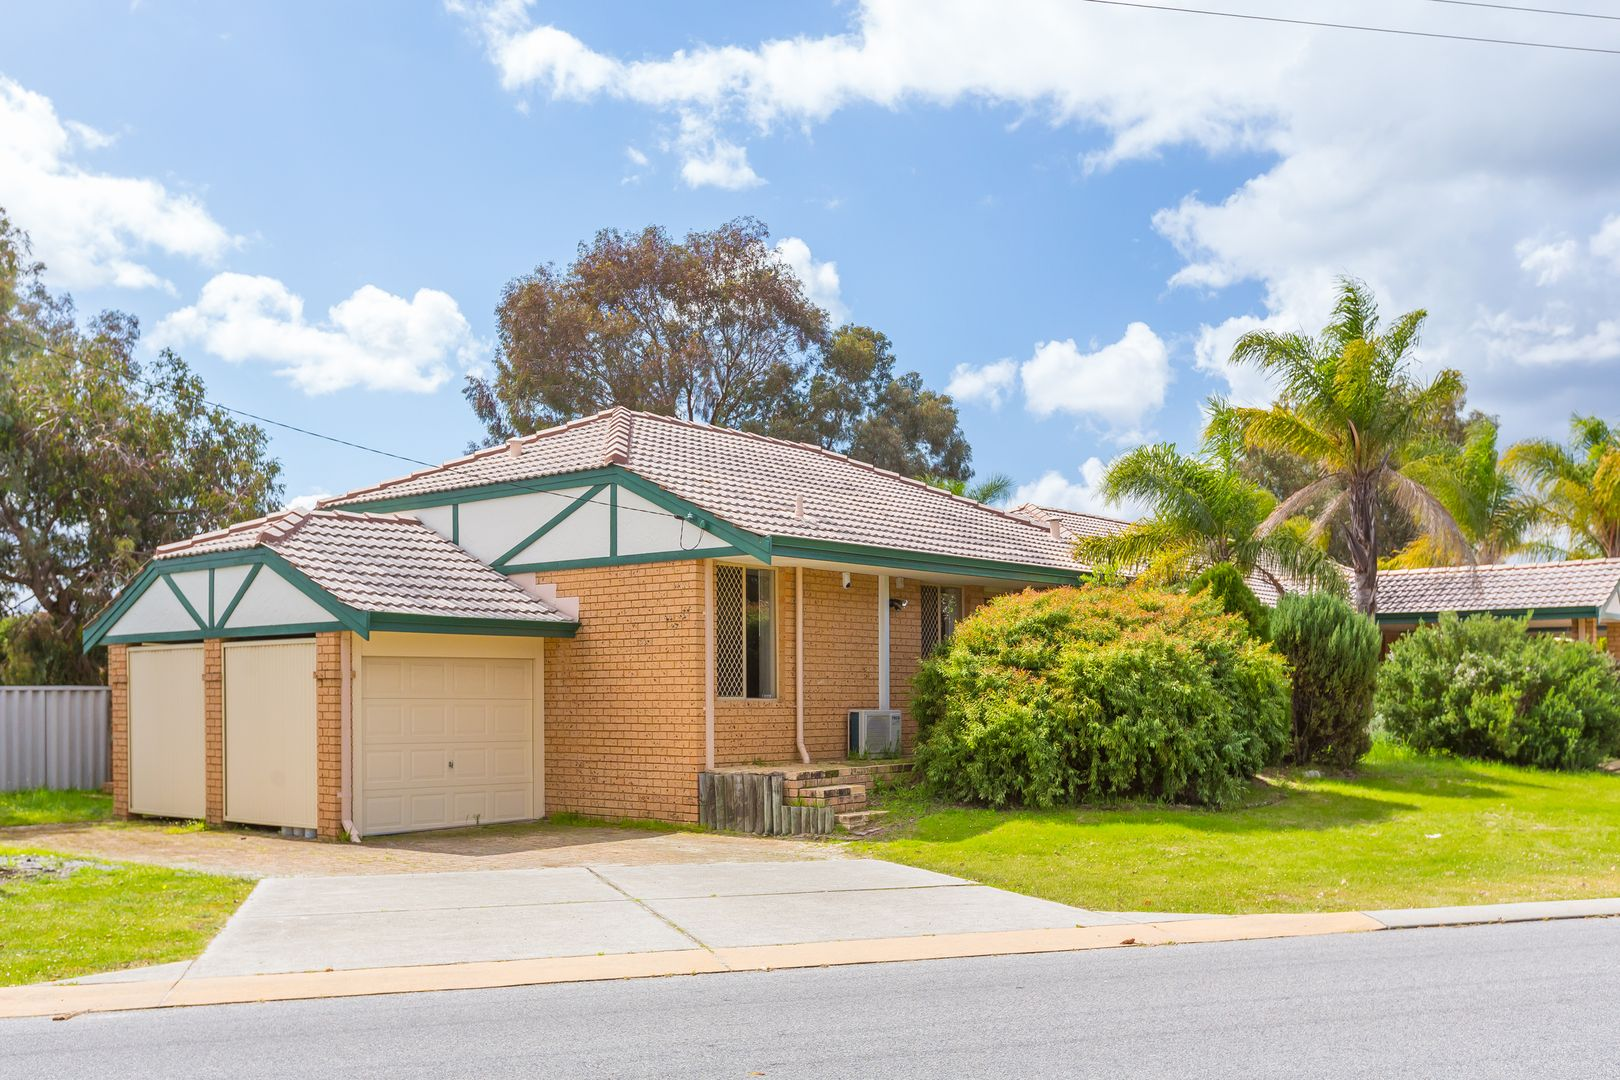 1/11 Stott Close, Armadale WA 6112, Image 0